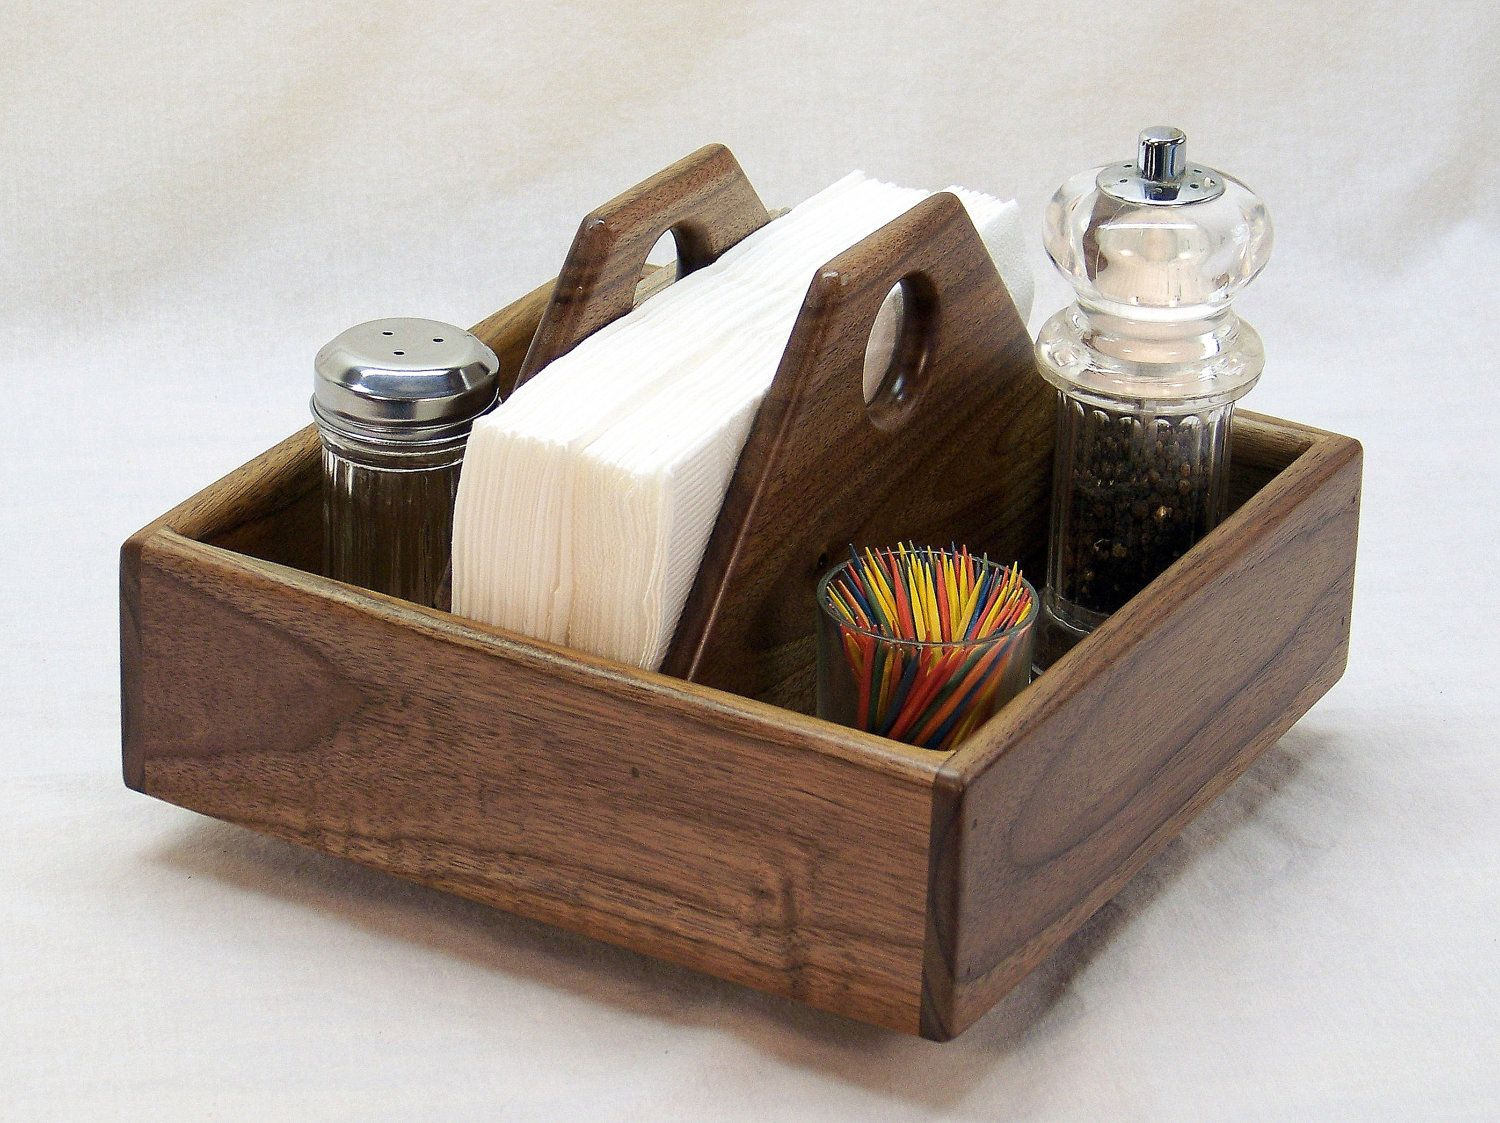 Restaurant Kitchen Organizer